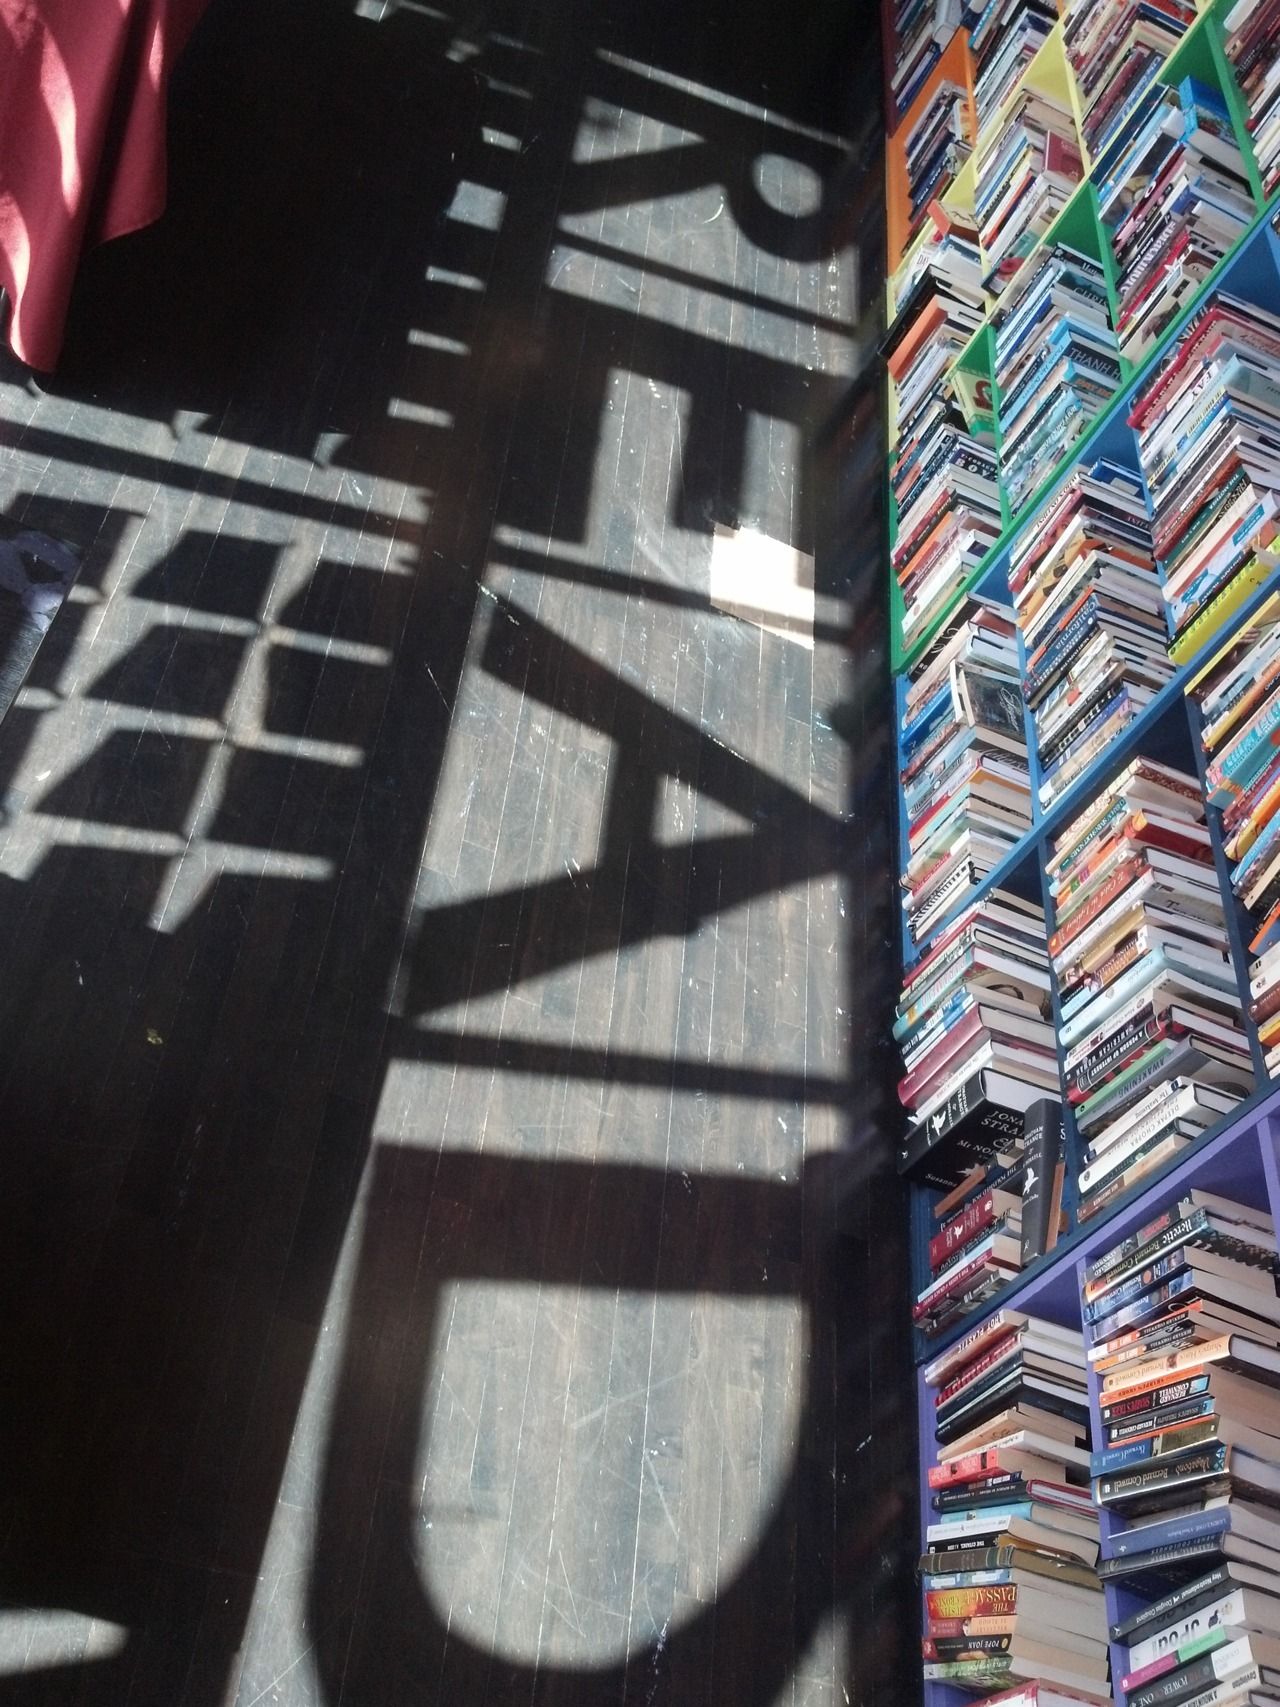 The shadows (in our store) know what lurks in the hearts of our customers! ^KE